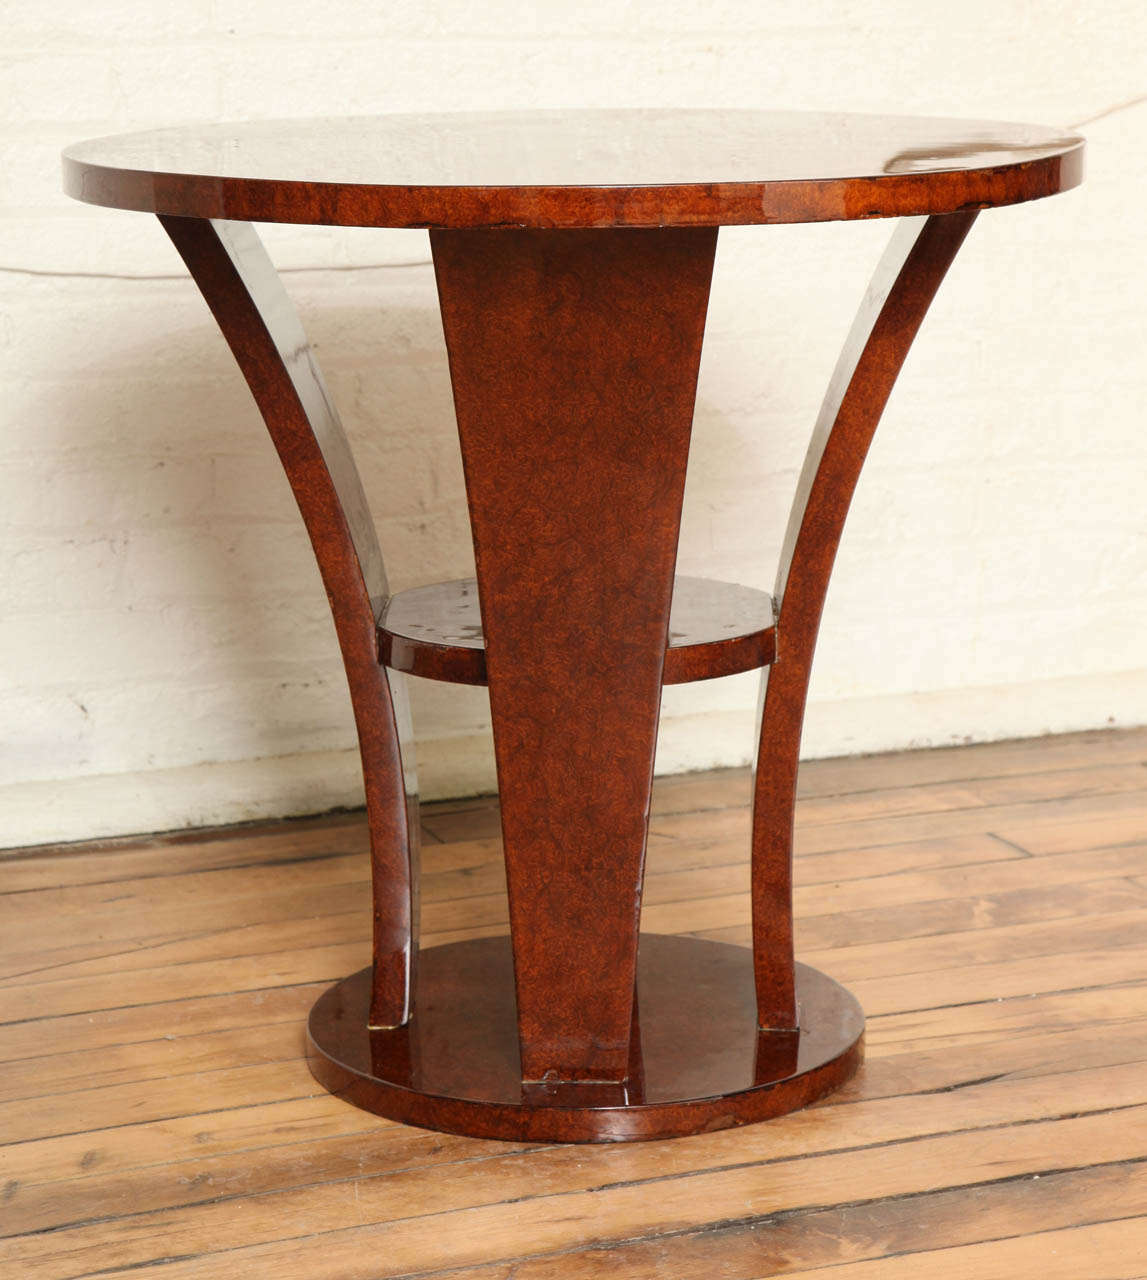 Art deco side table gueridon at 1stdibs for Table gueridon